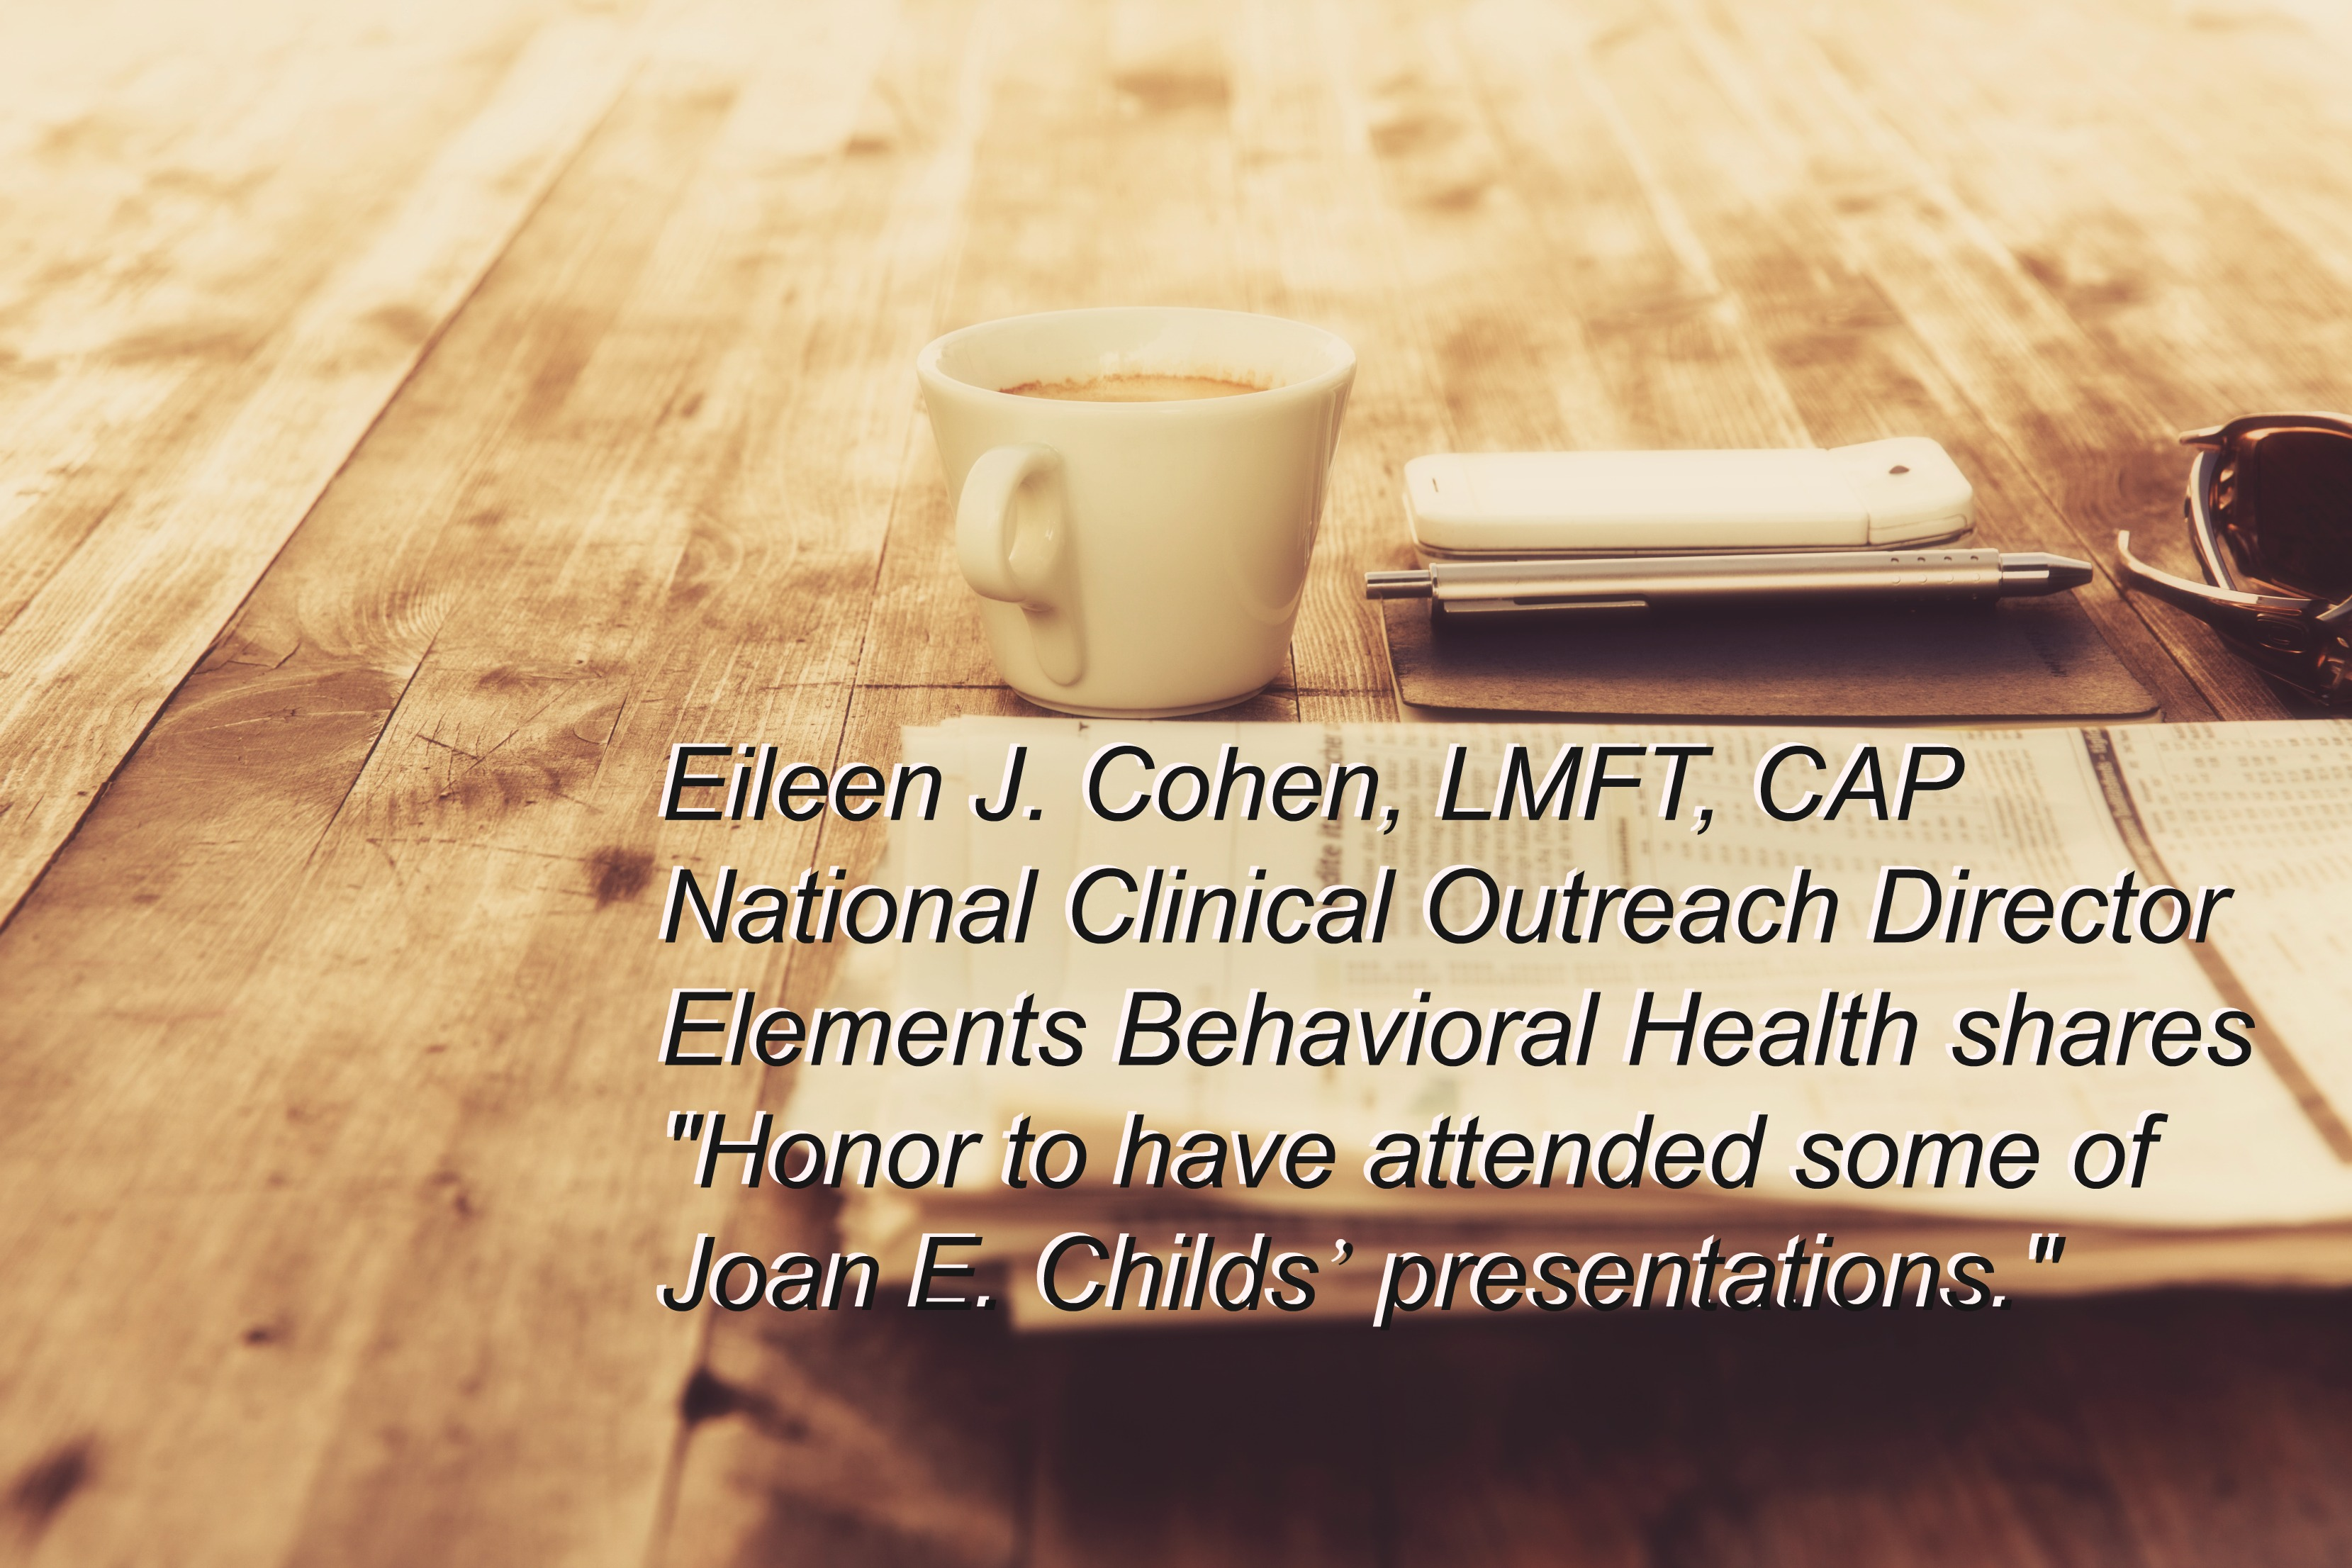 """Honor to have attended some of Joan  E. Childs' presentations"" Review by Eileen J. Cohen, LMFT, CAP"